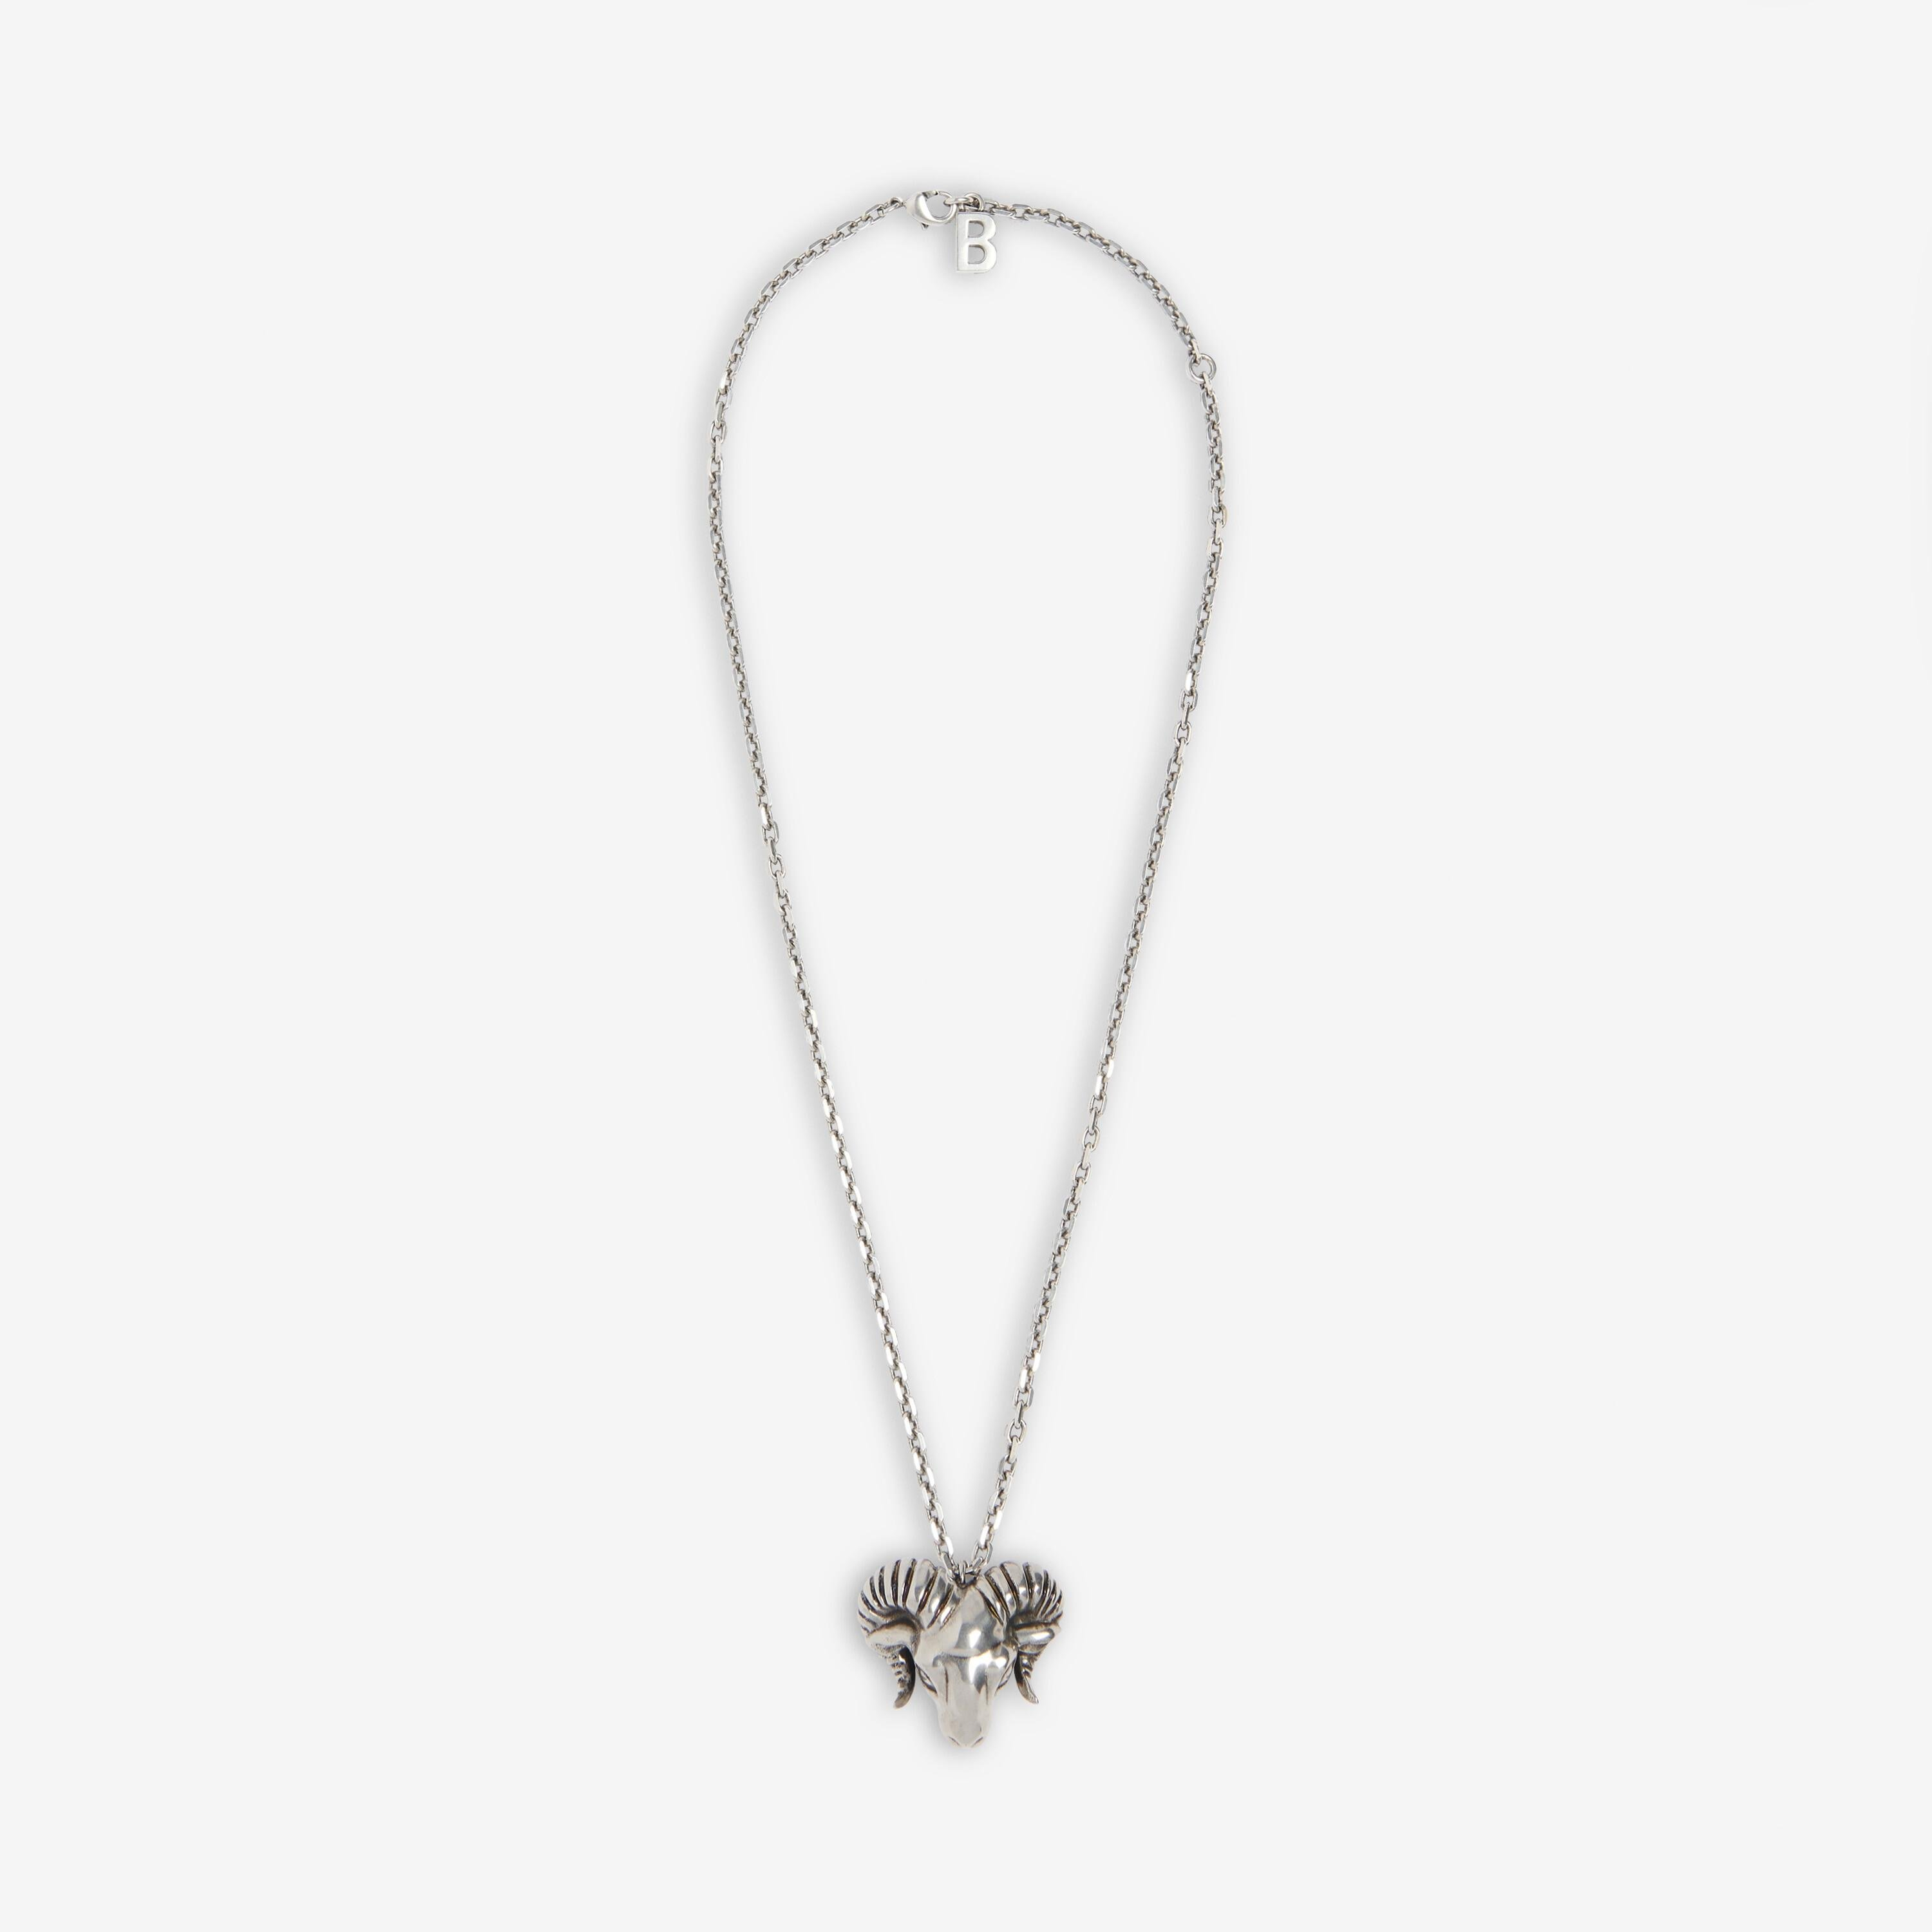 Zodiac Sign Aries Necklace